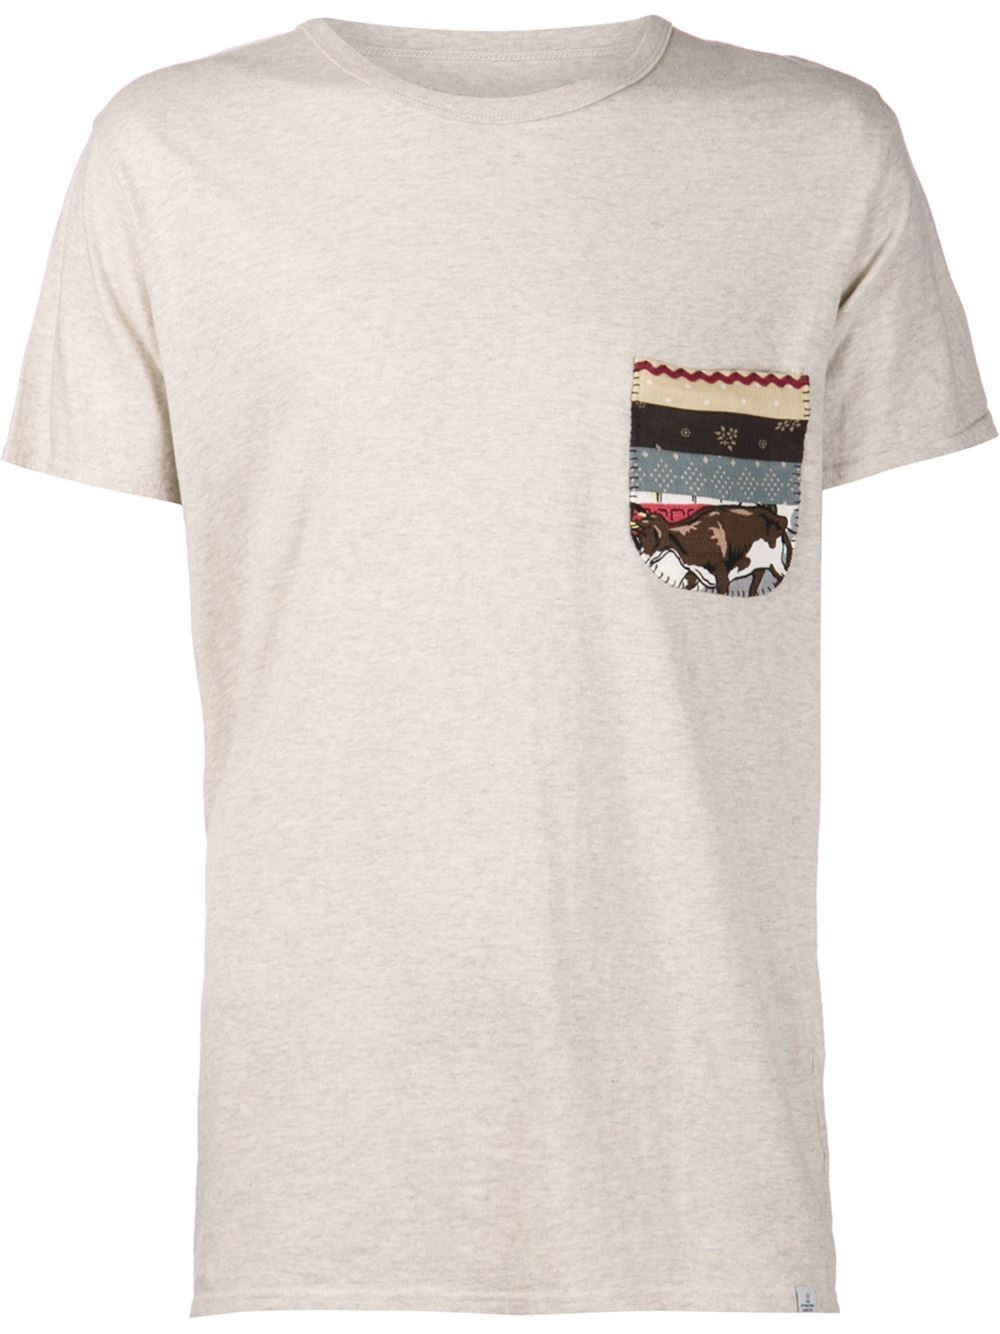 Lyst visvim print pocket t shirt in natural for men for Pocket t shirt printing